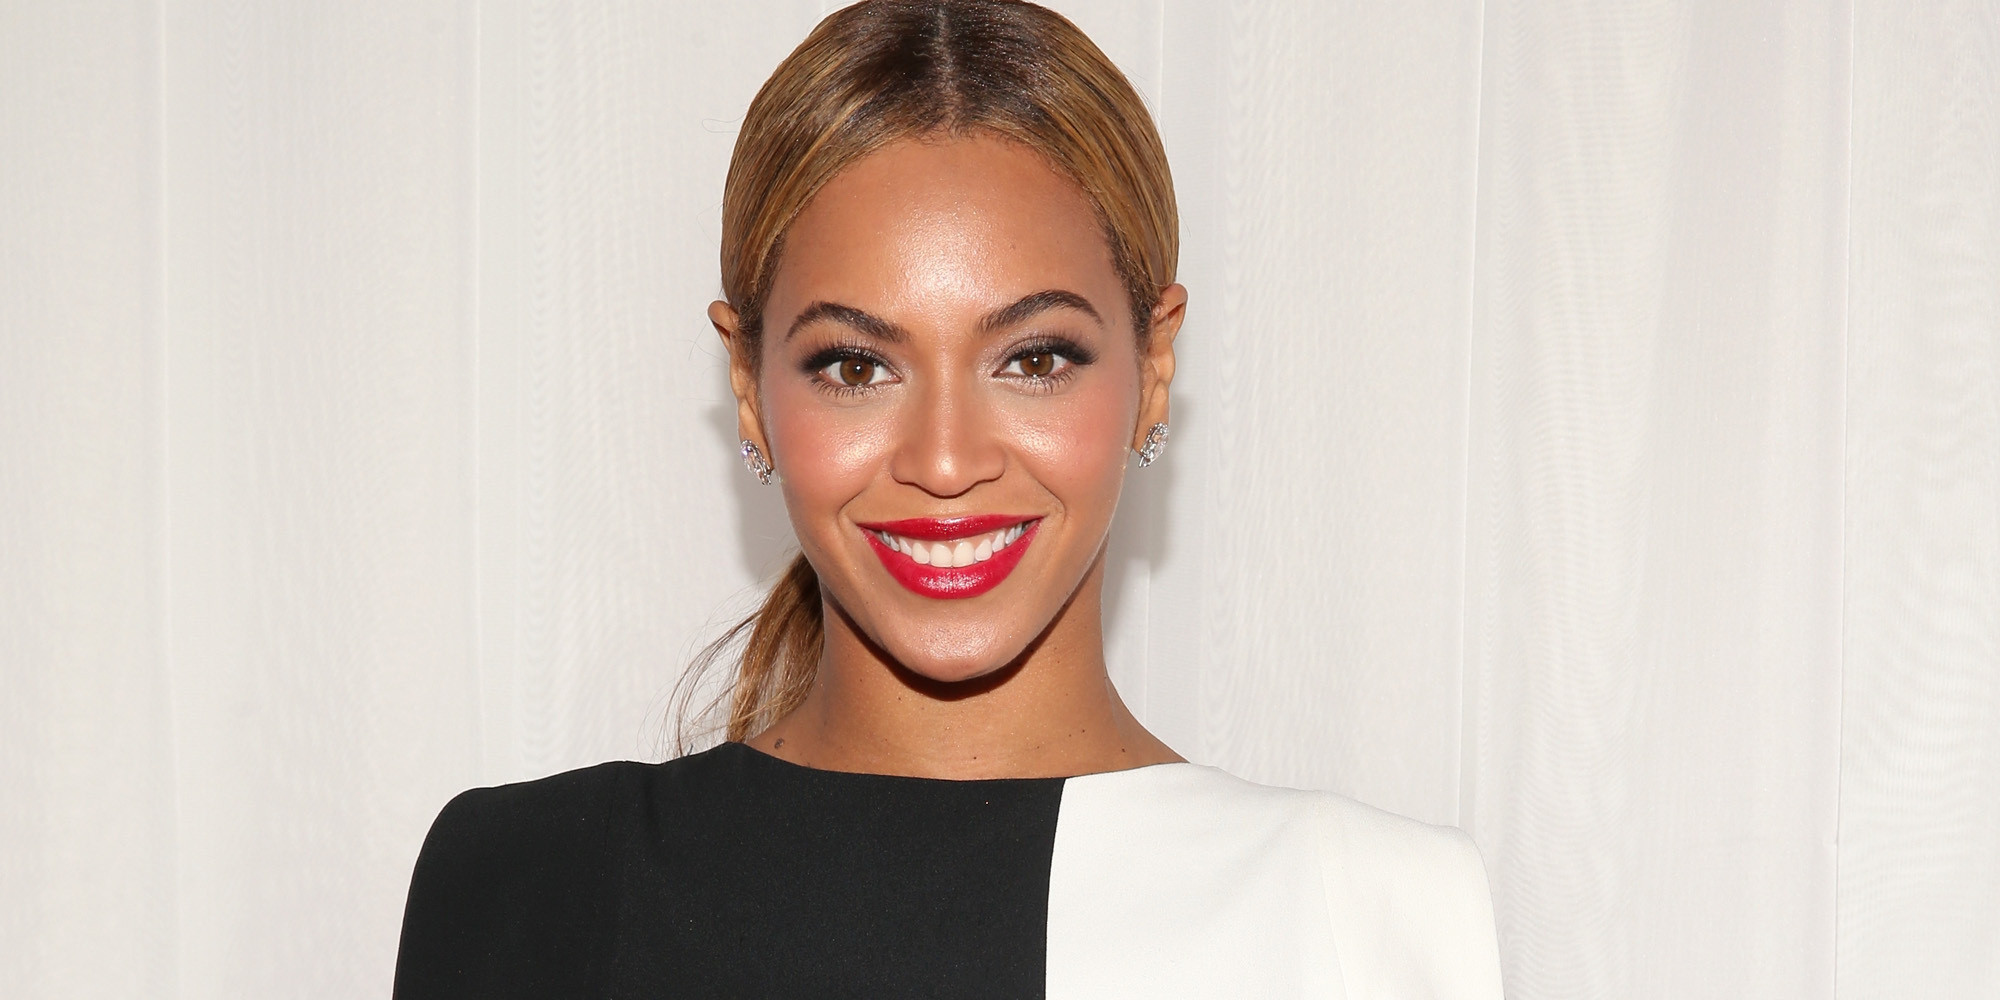 Woman Looks So Much Like Beyoncé That Fans Chase Her For Selfies ...